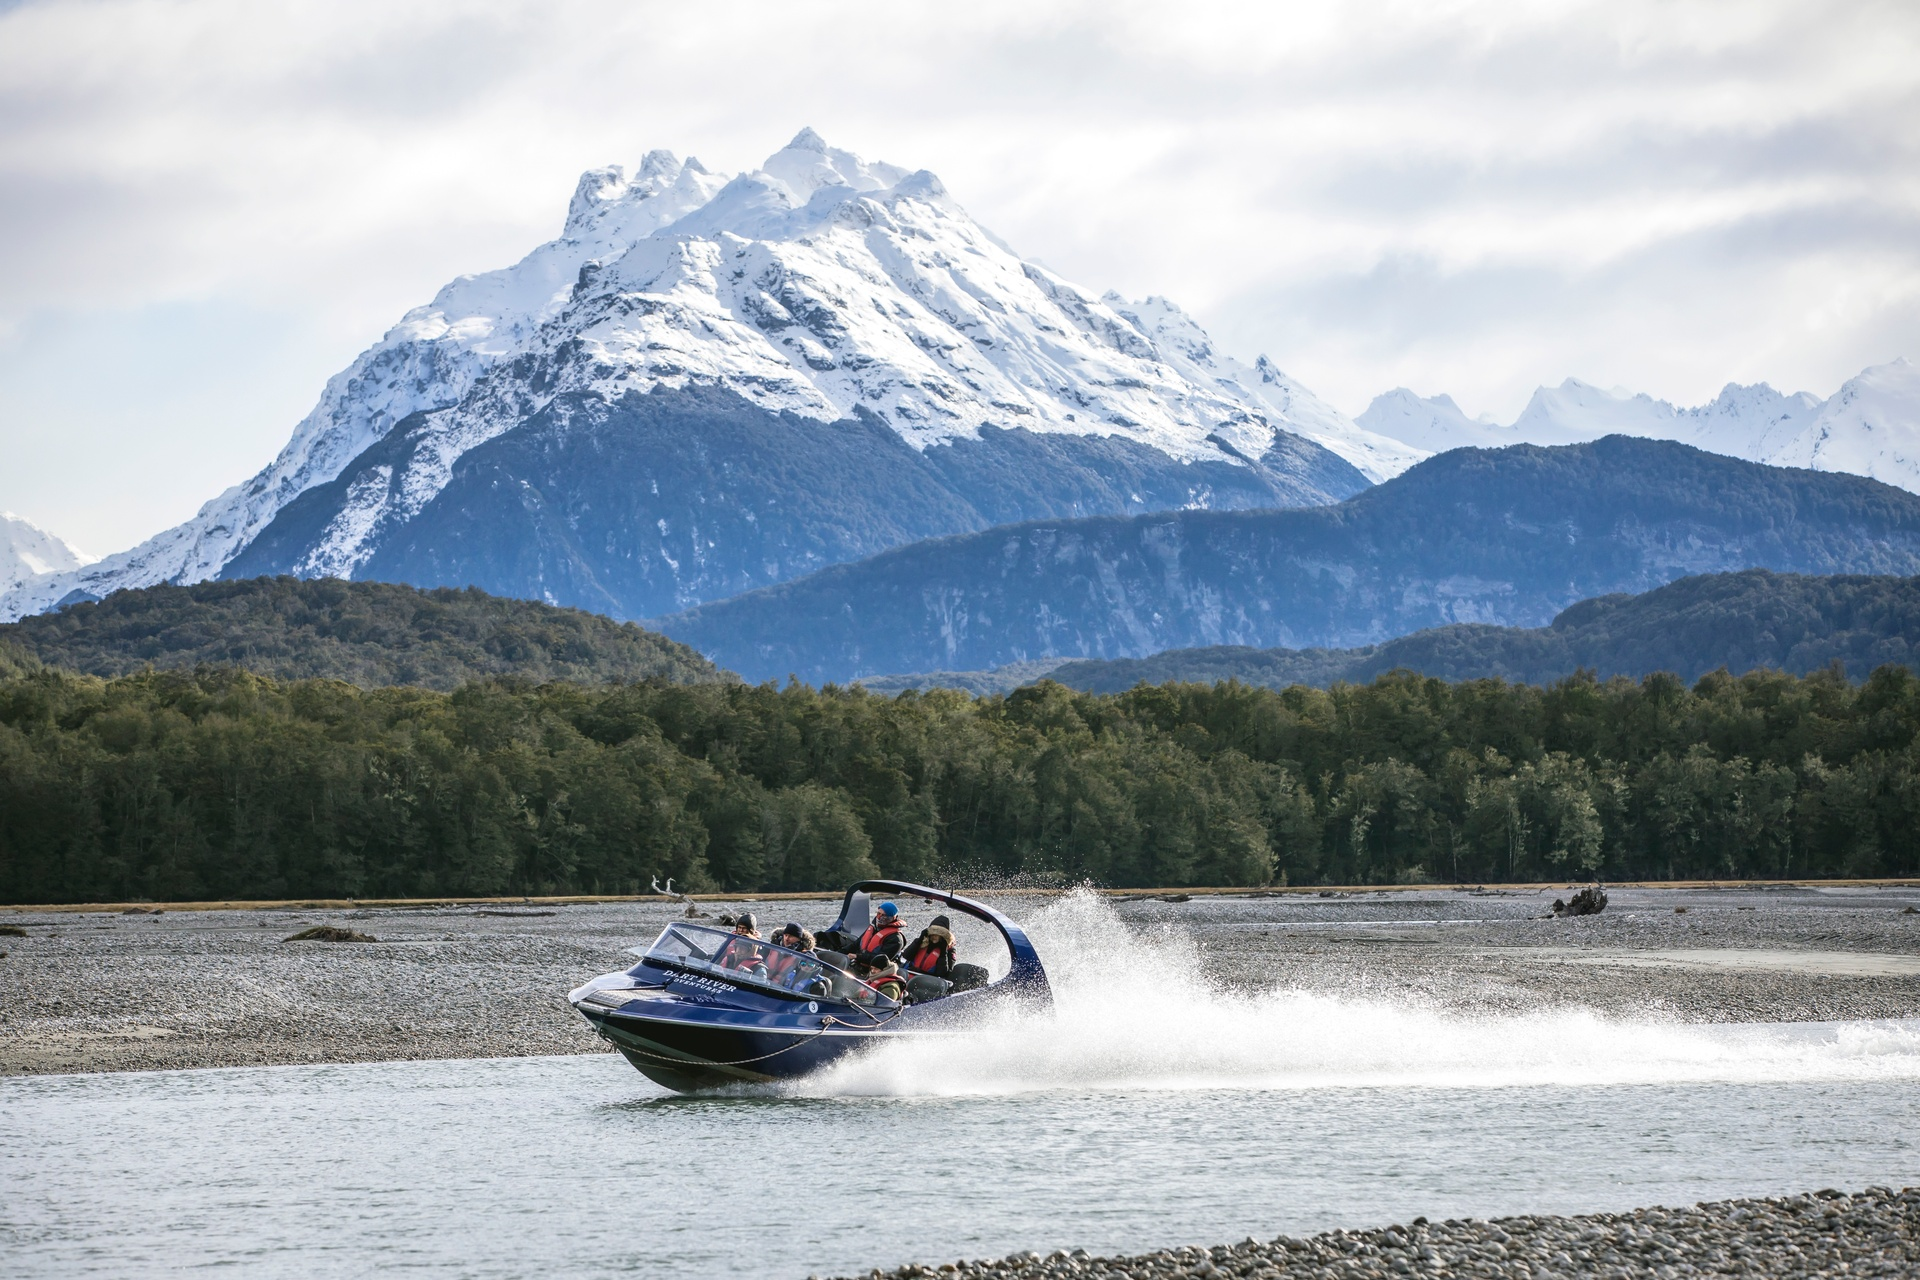 Jetboating at Glenorchy. Picture courtesy Miles Holden.